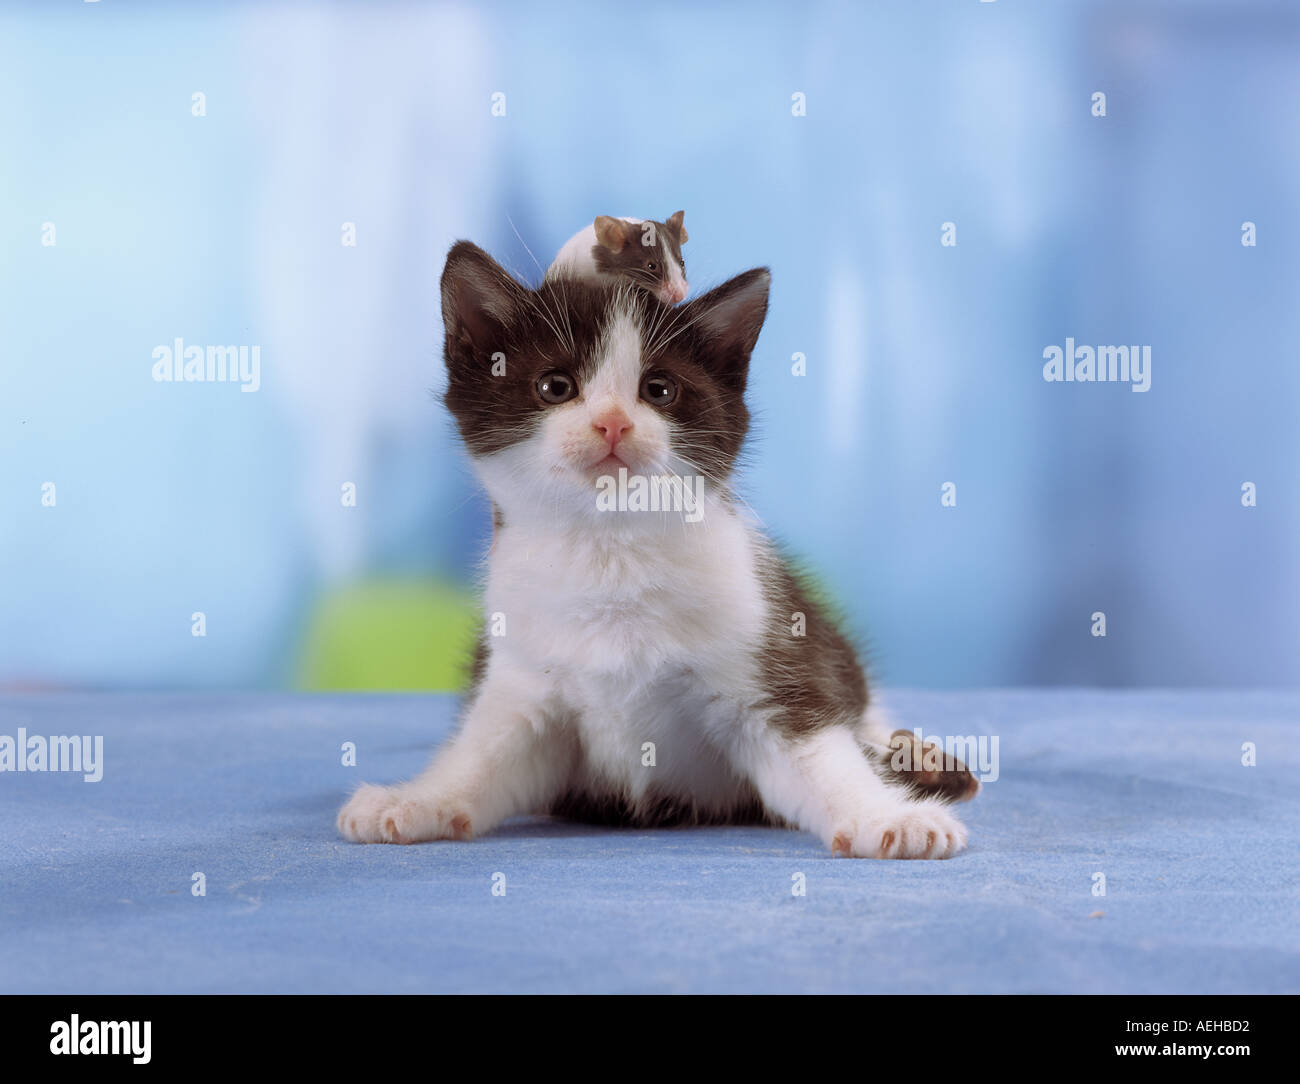 animal-friendship-kitten-with-a-mouse-on